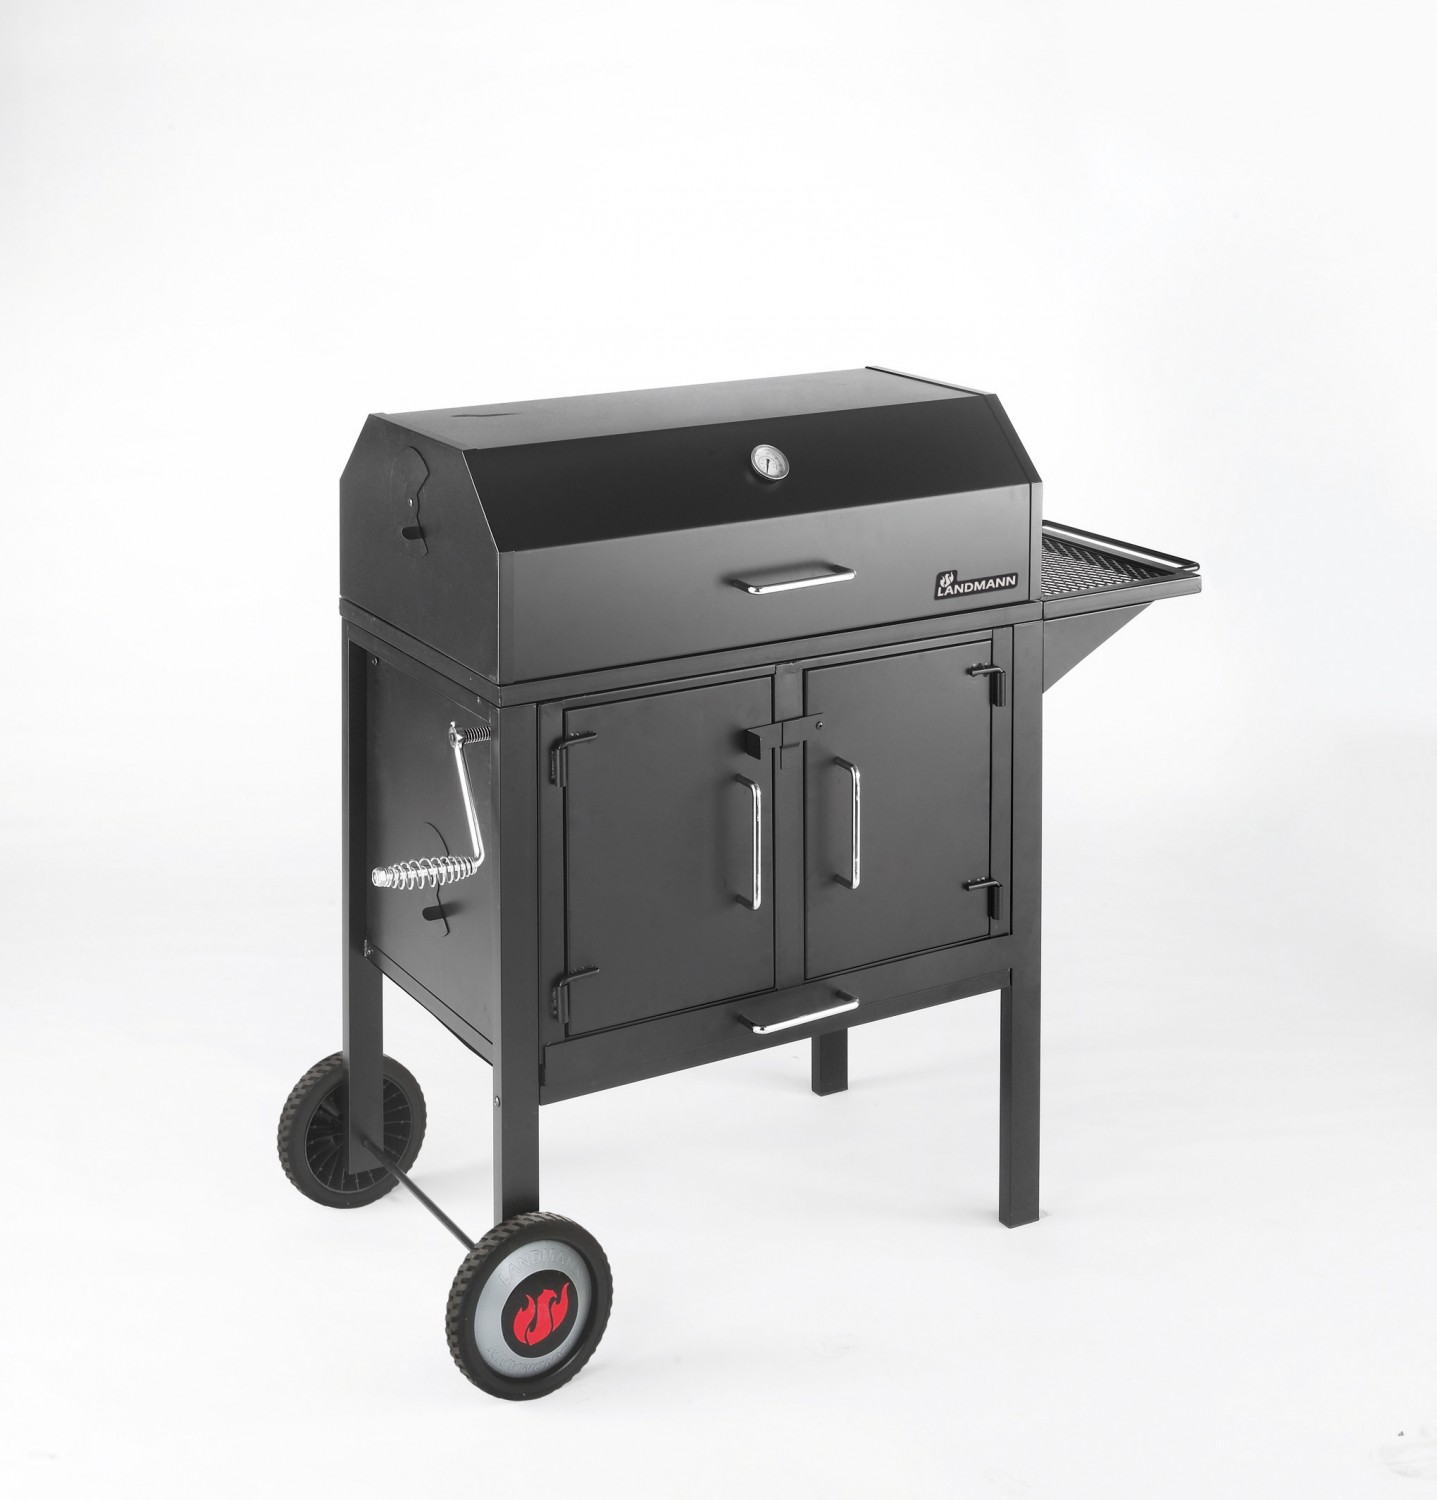 landmann grillwagen black dog 11421